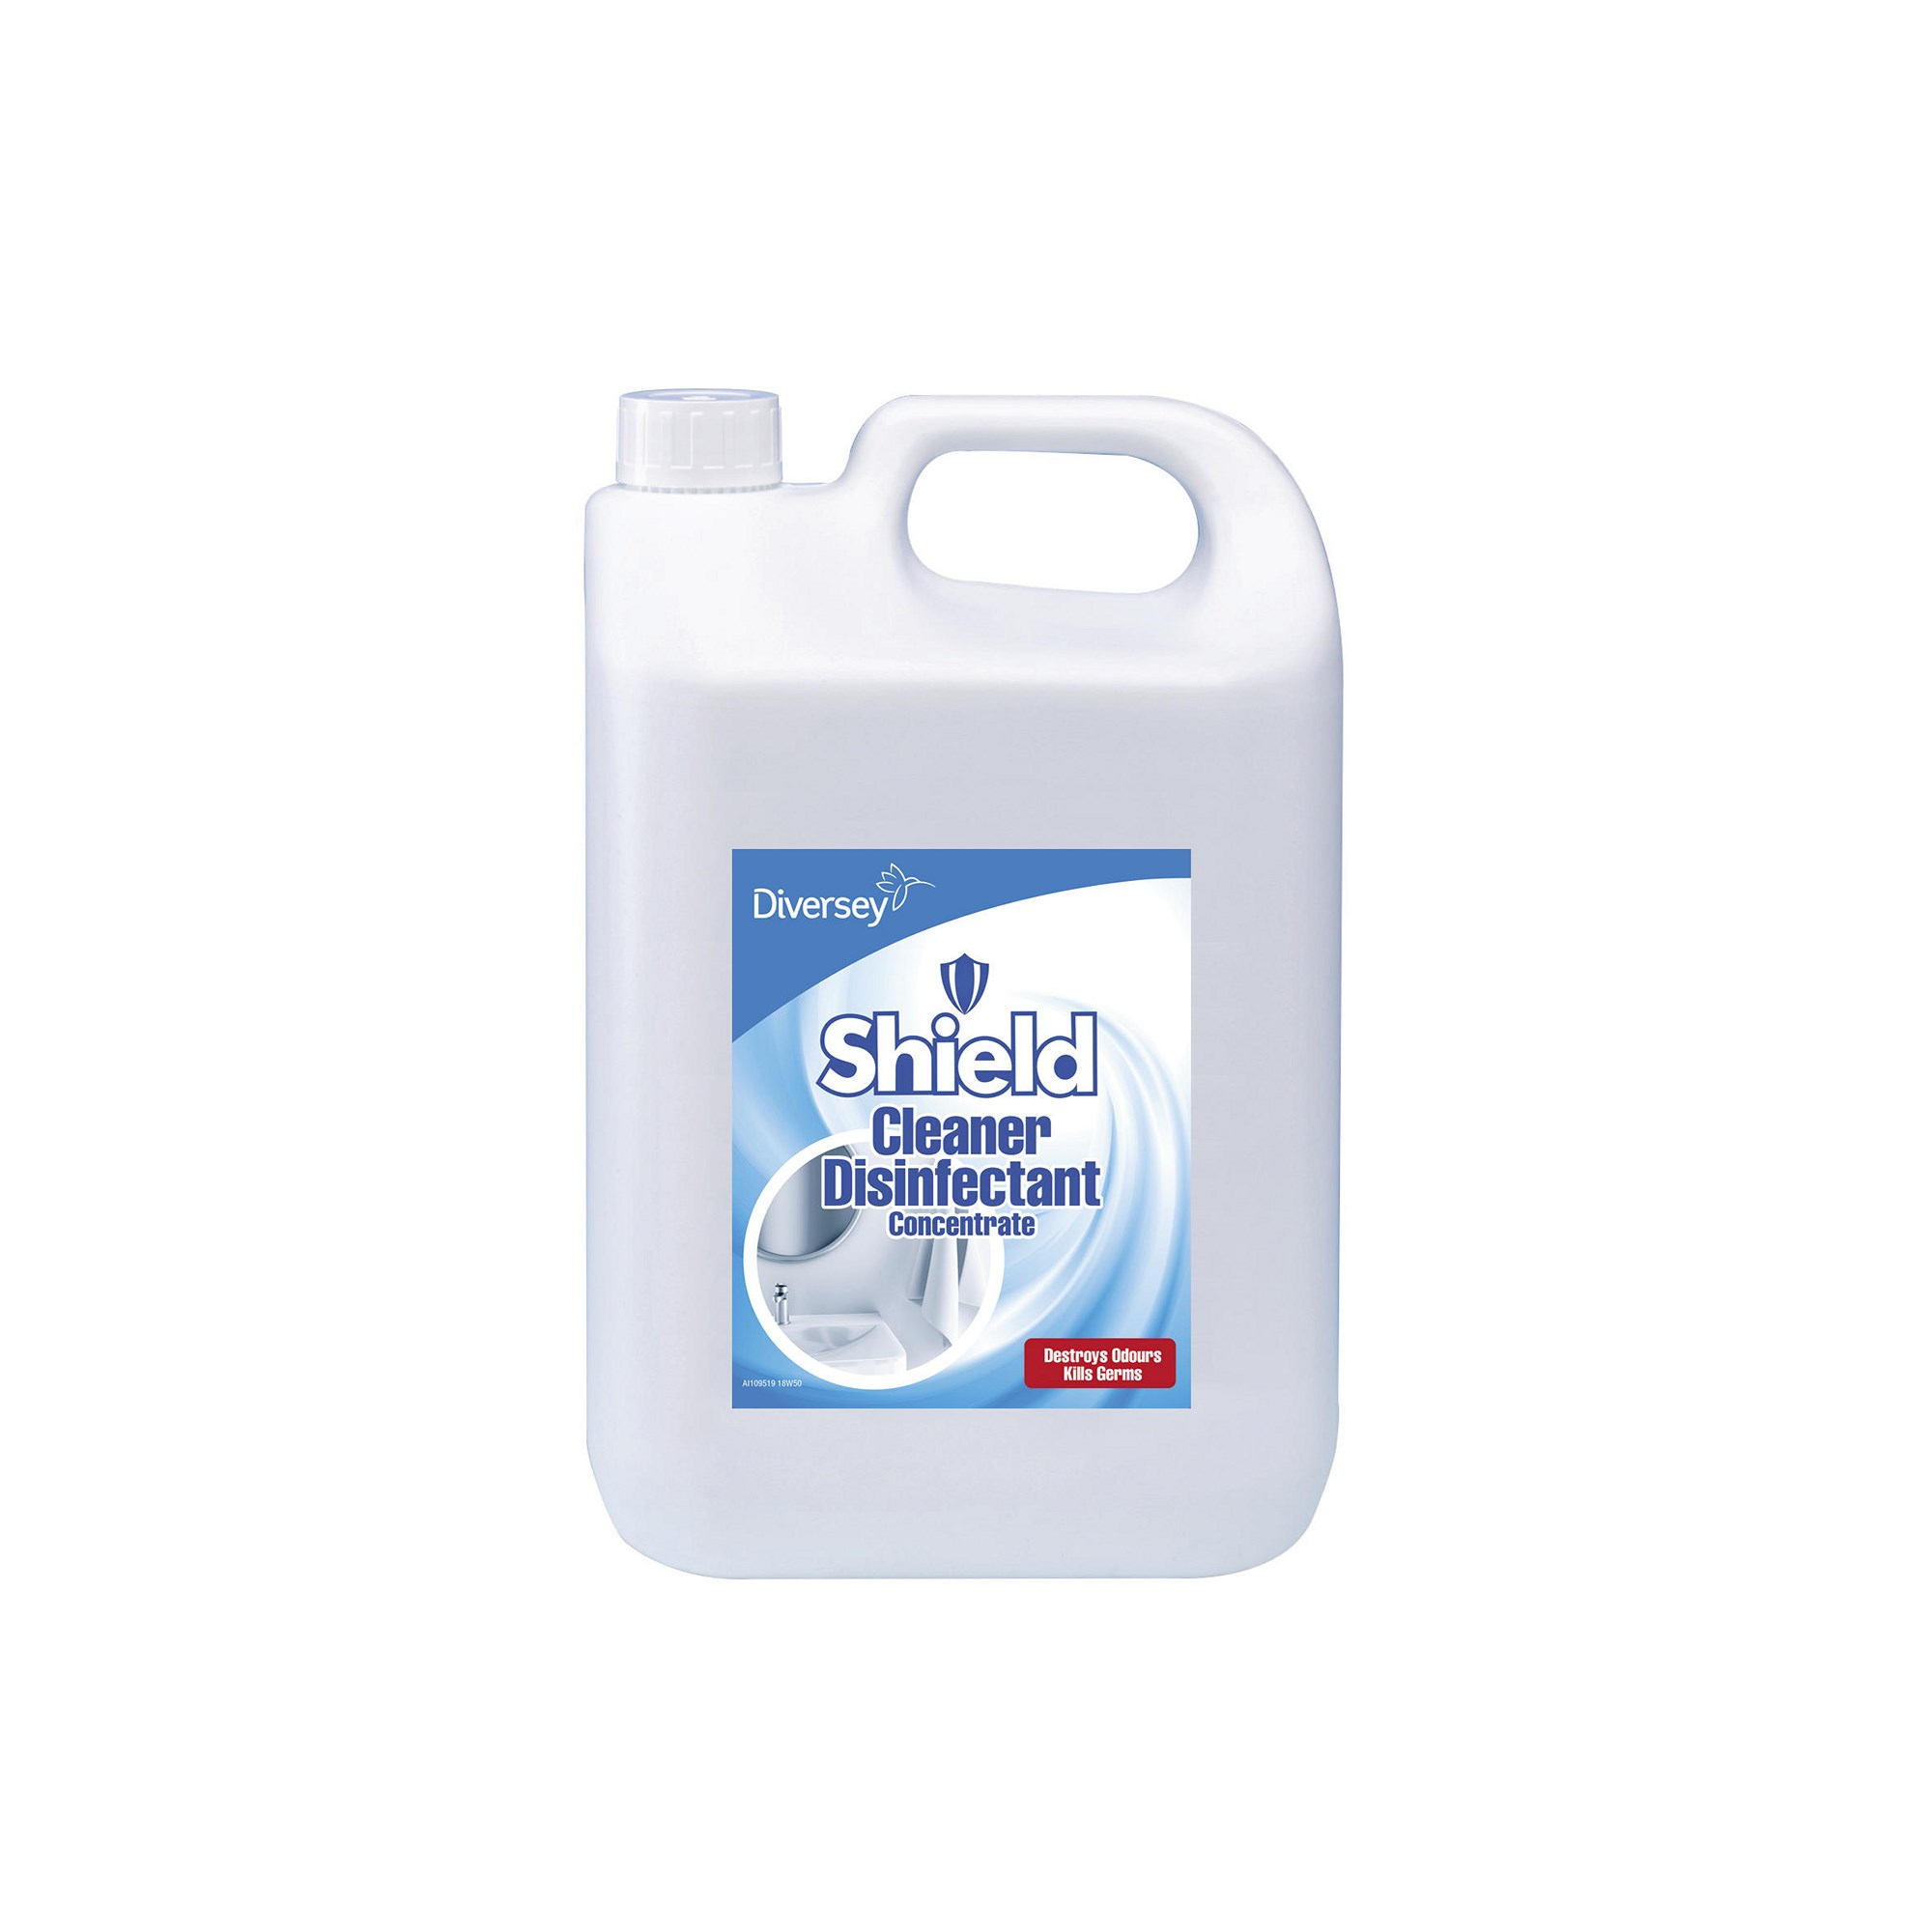 Diversey Shield Disinfectant Cleaner 5L (Case of 2)